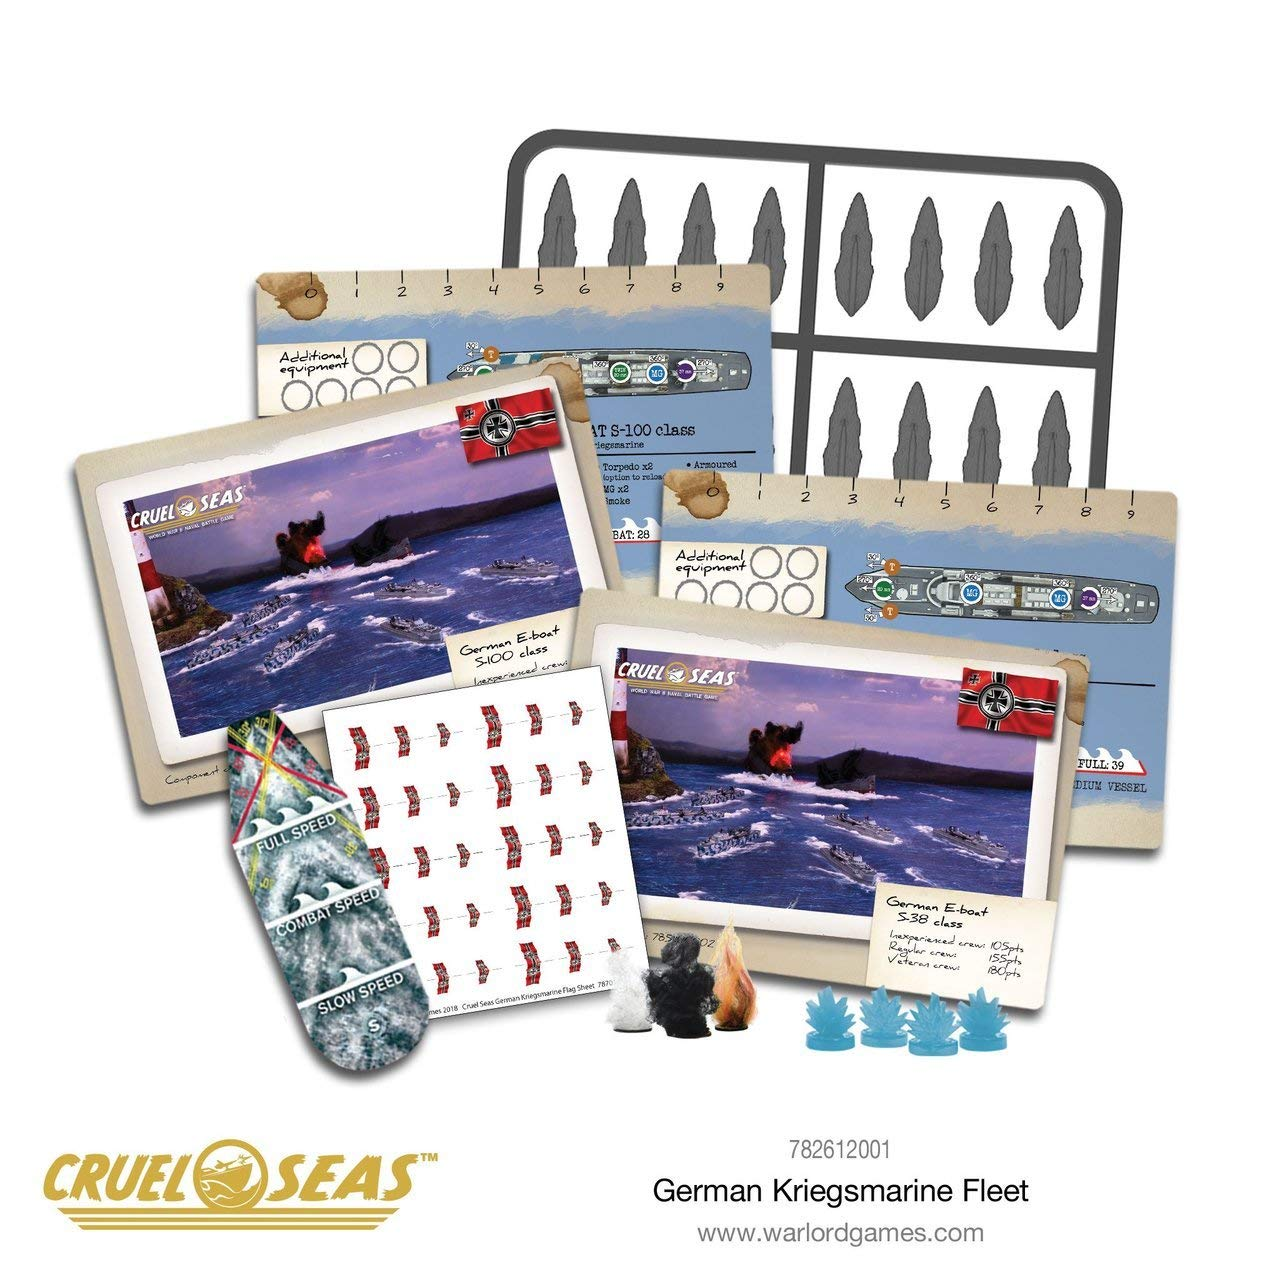 Cruel Seas German Kriegsmarine Fleet Starter Set, World War II Naval Battle Game ... by Cruel Seas (Image #7)